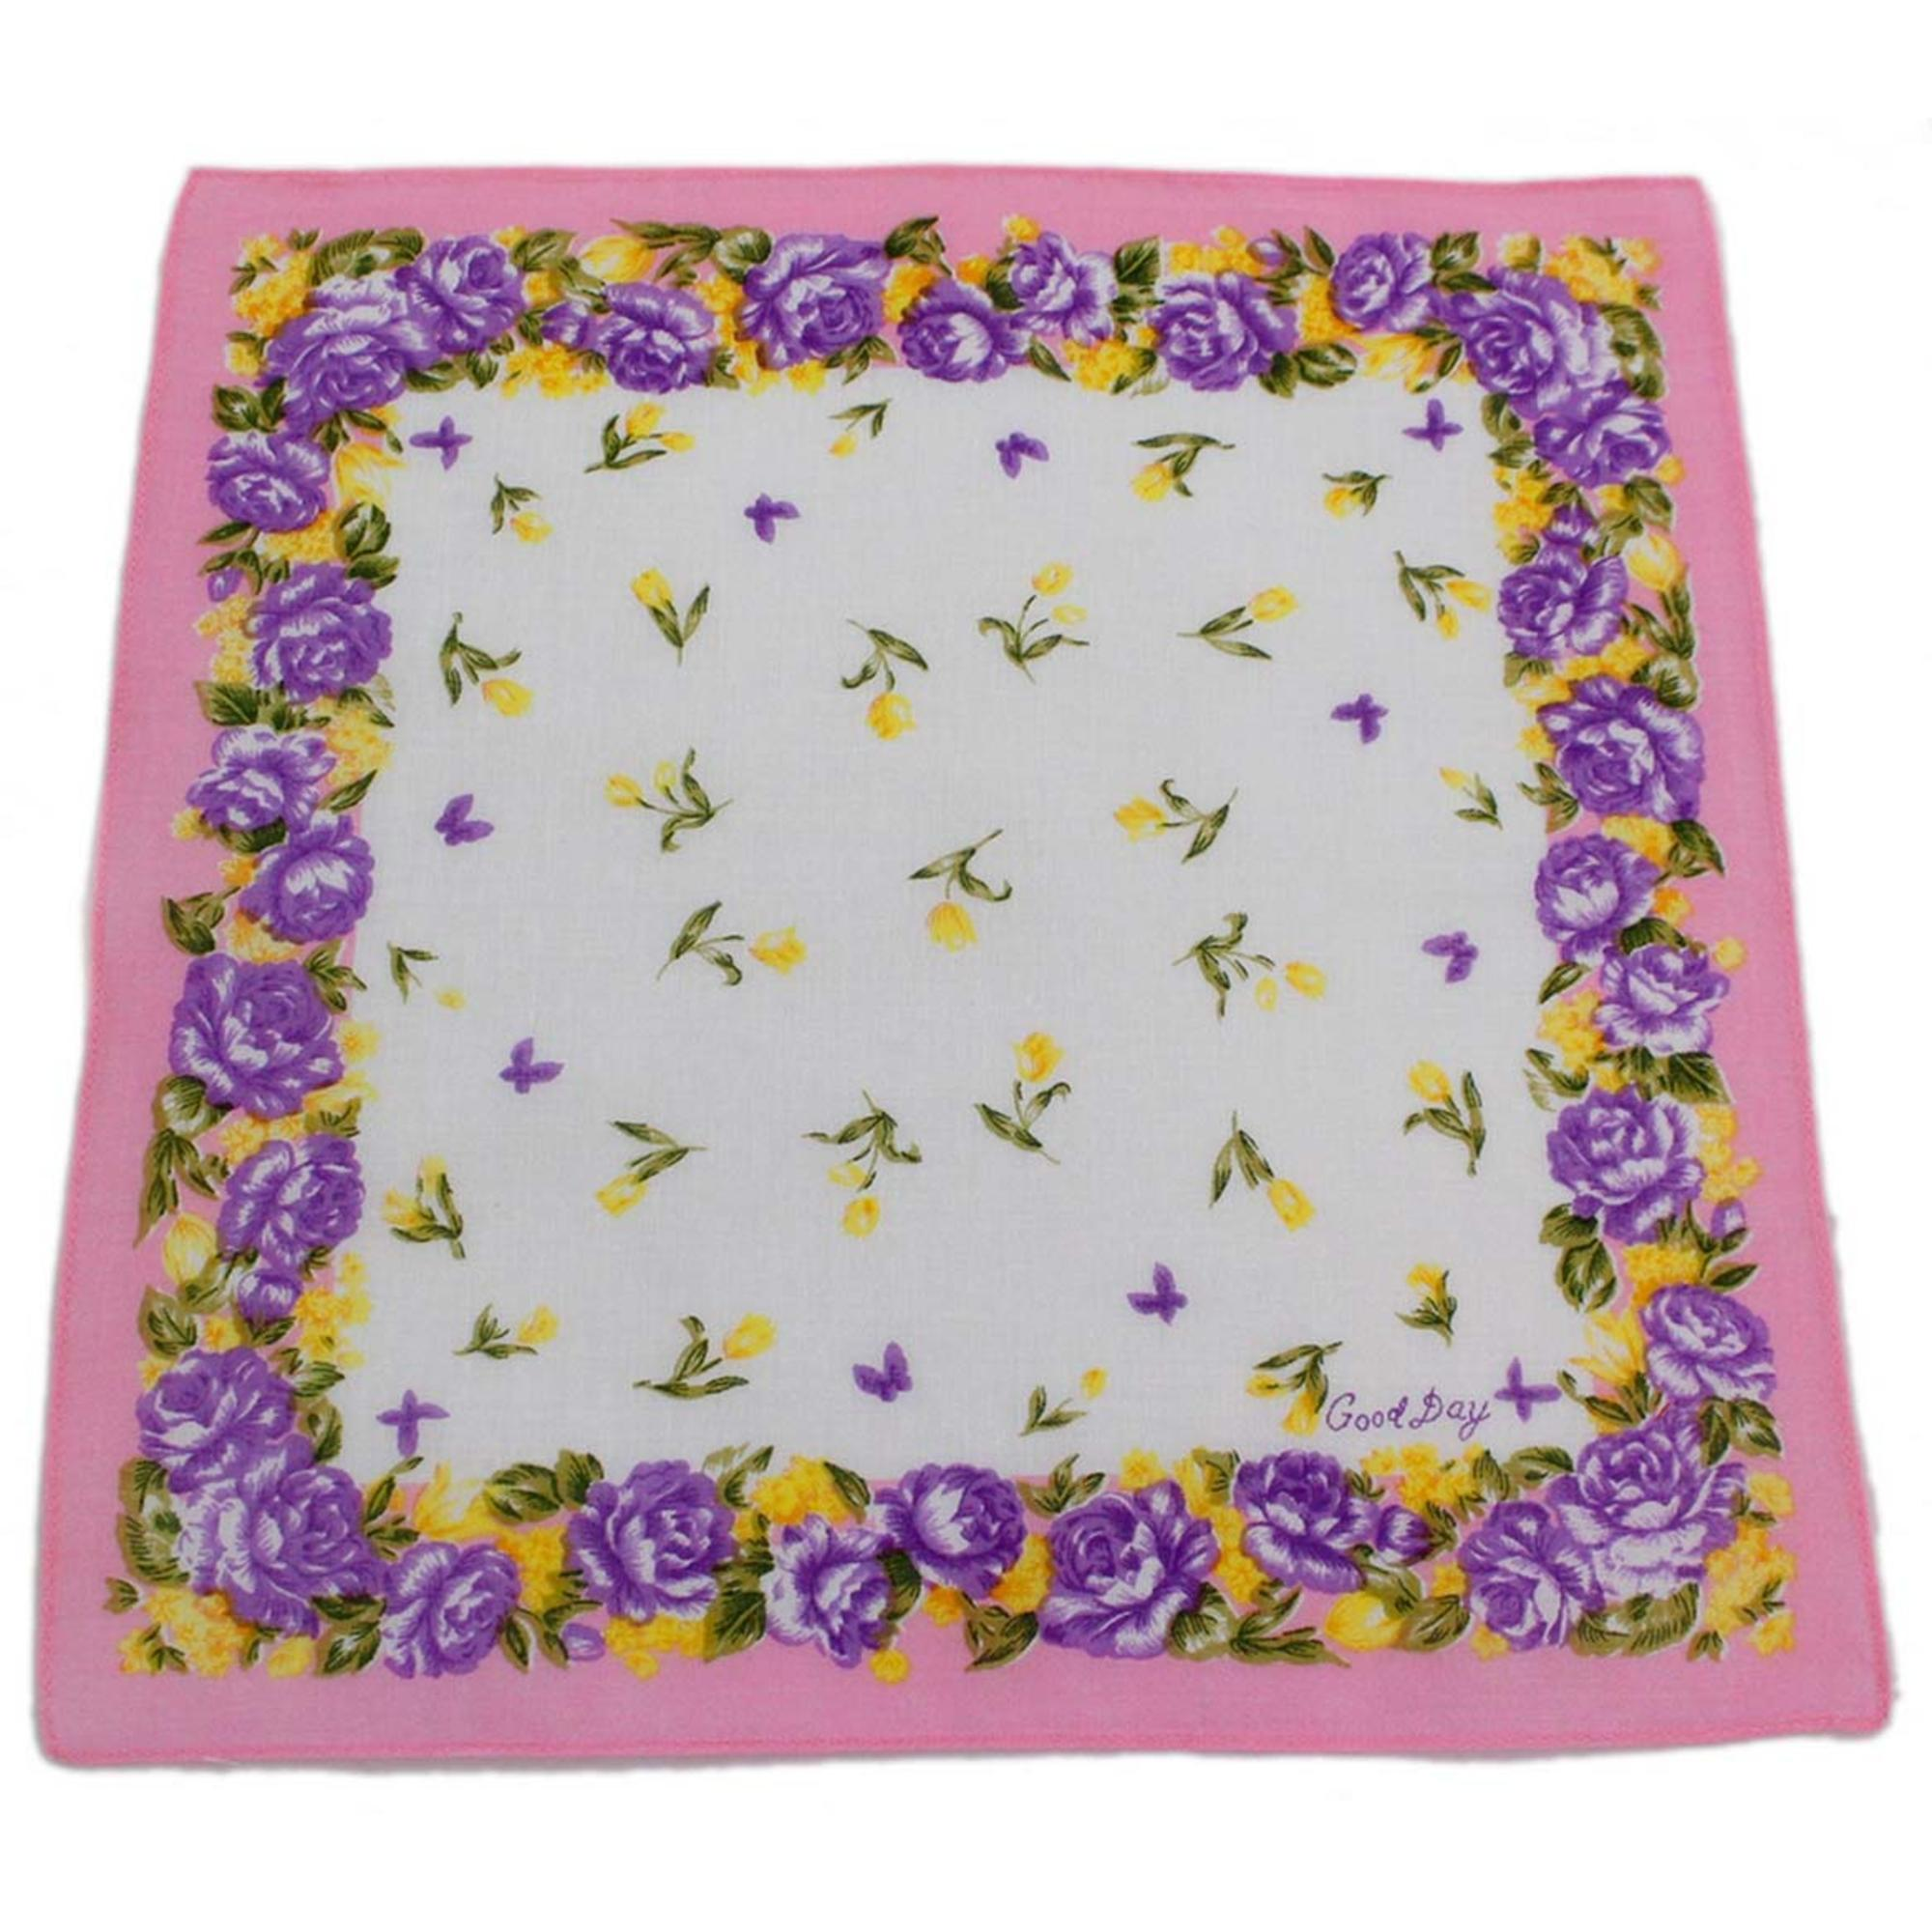 Pink Good Day Colorful Printed Handkerchief with Rose Border